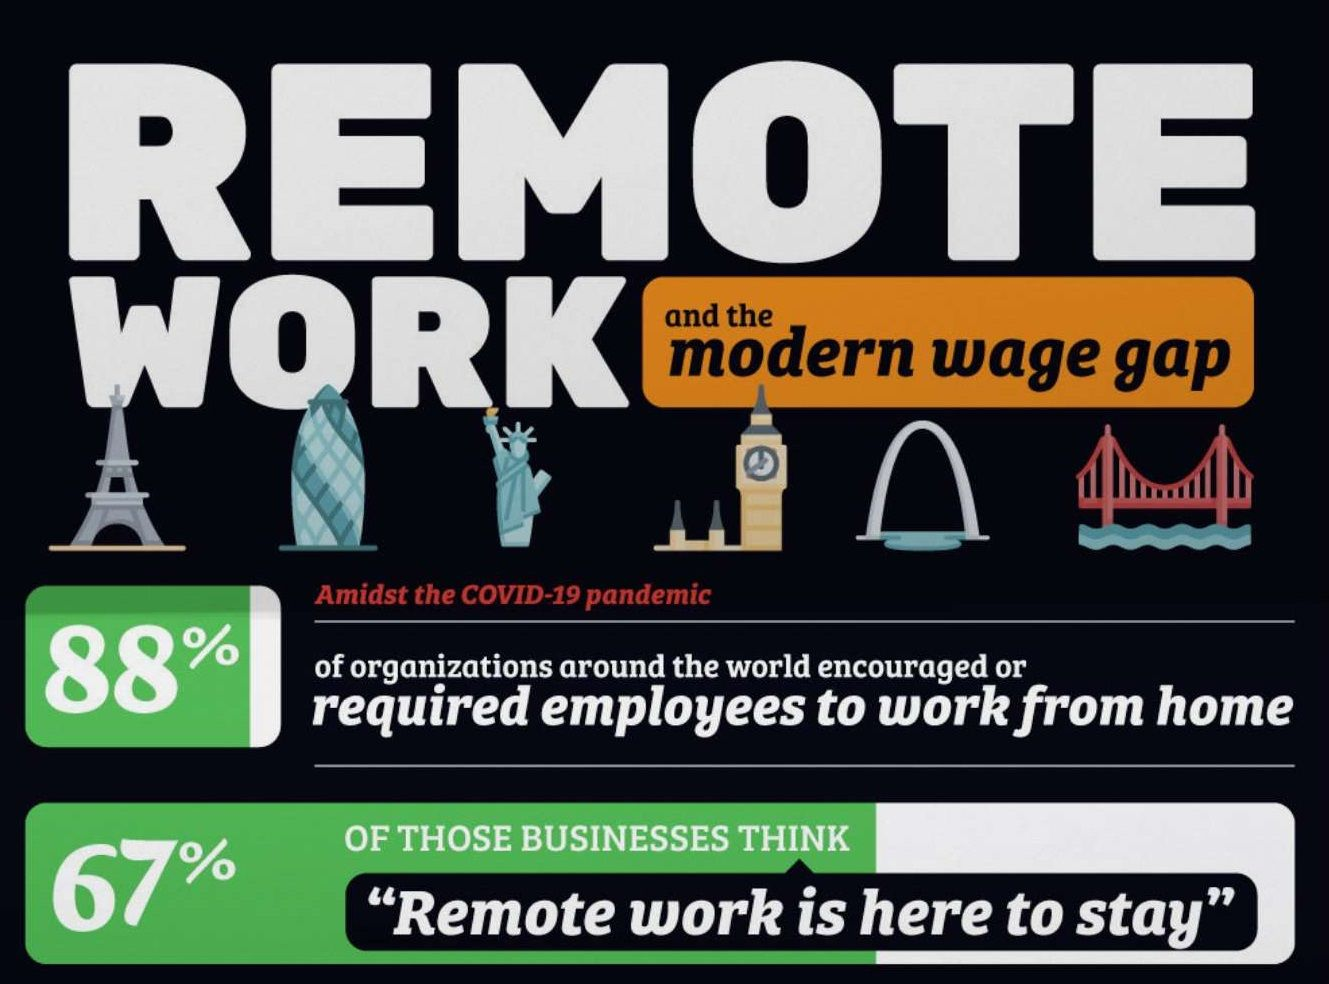 /hacking-remote-work-for-pay-equity-y2s31lm feature image